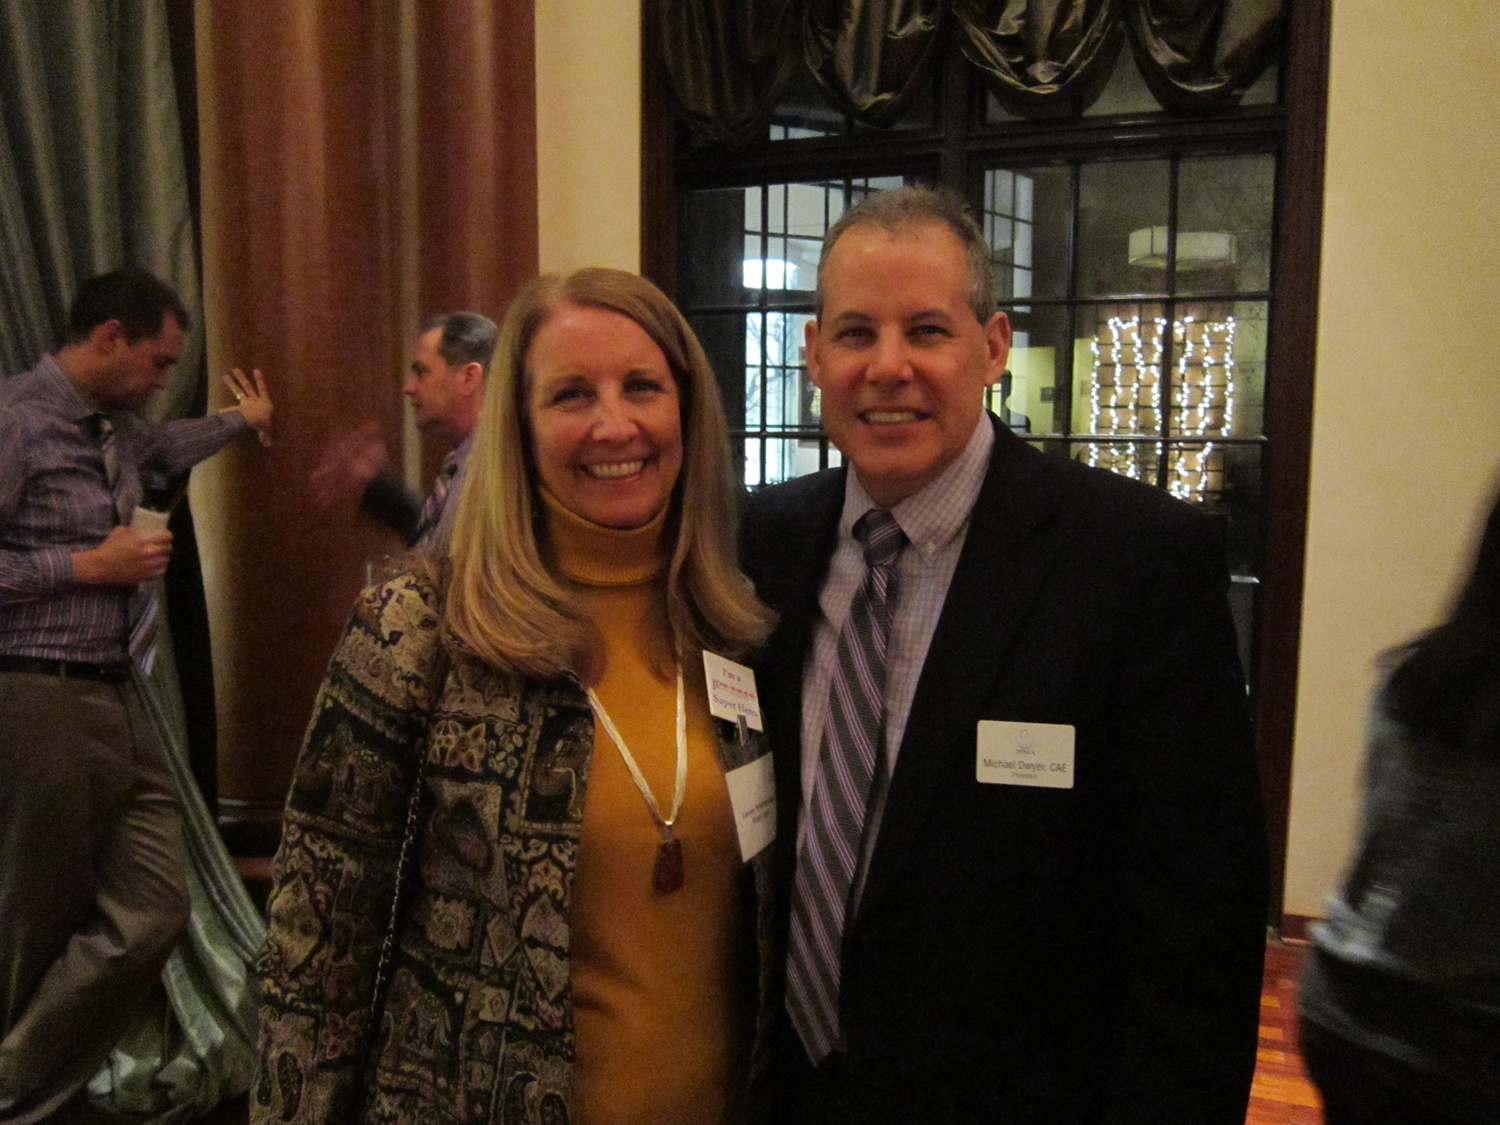 JPMA Board of Directors Chair Luanne Lager and JPMA President Michael Dwyer